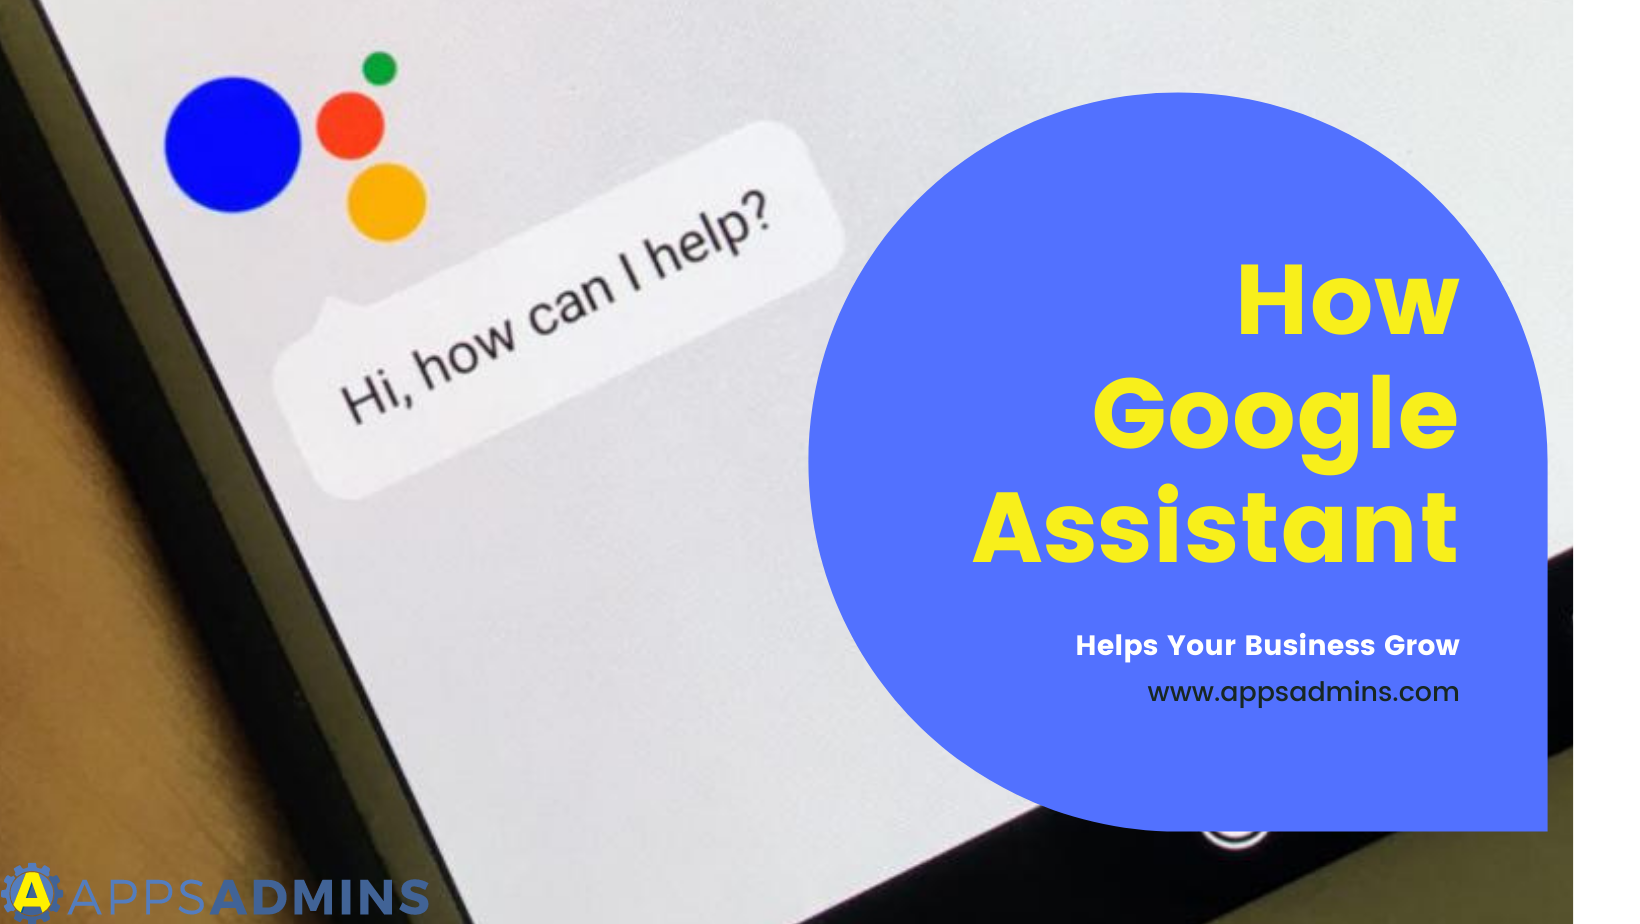 How_Google_Assistant_Can_Help_Business_Growth